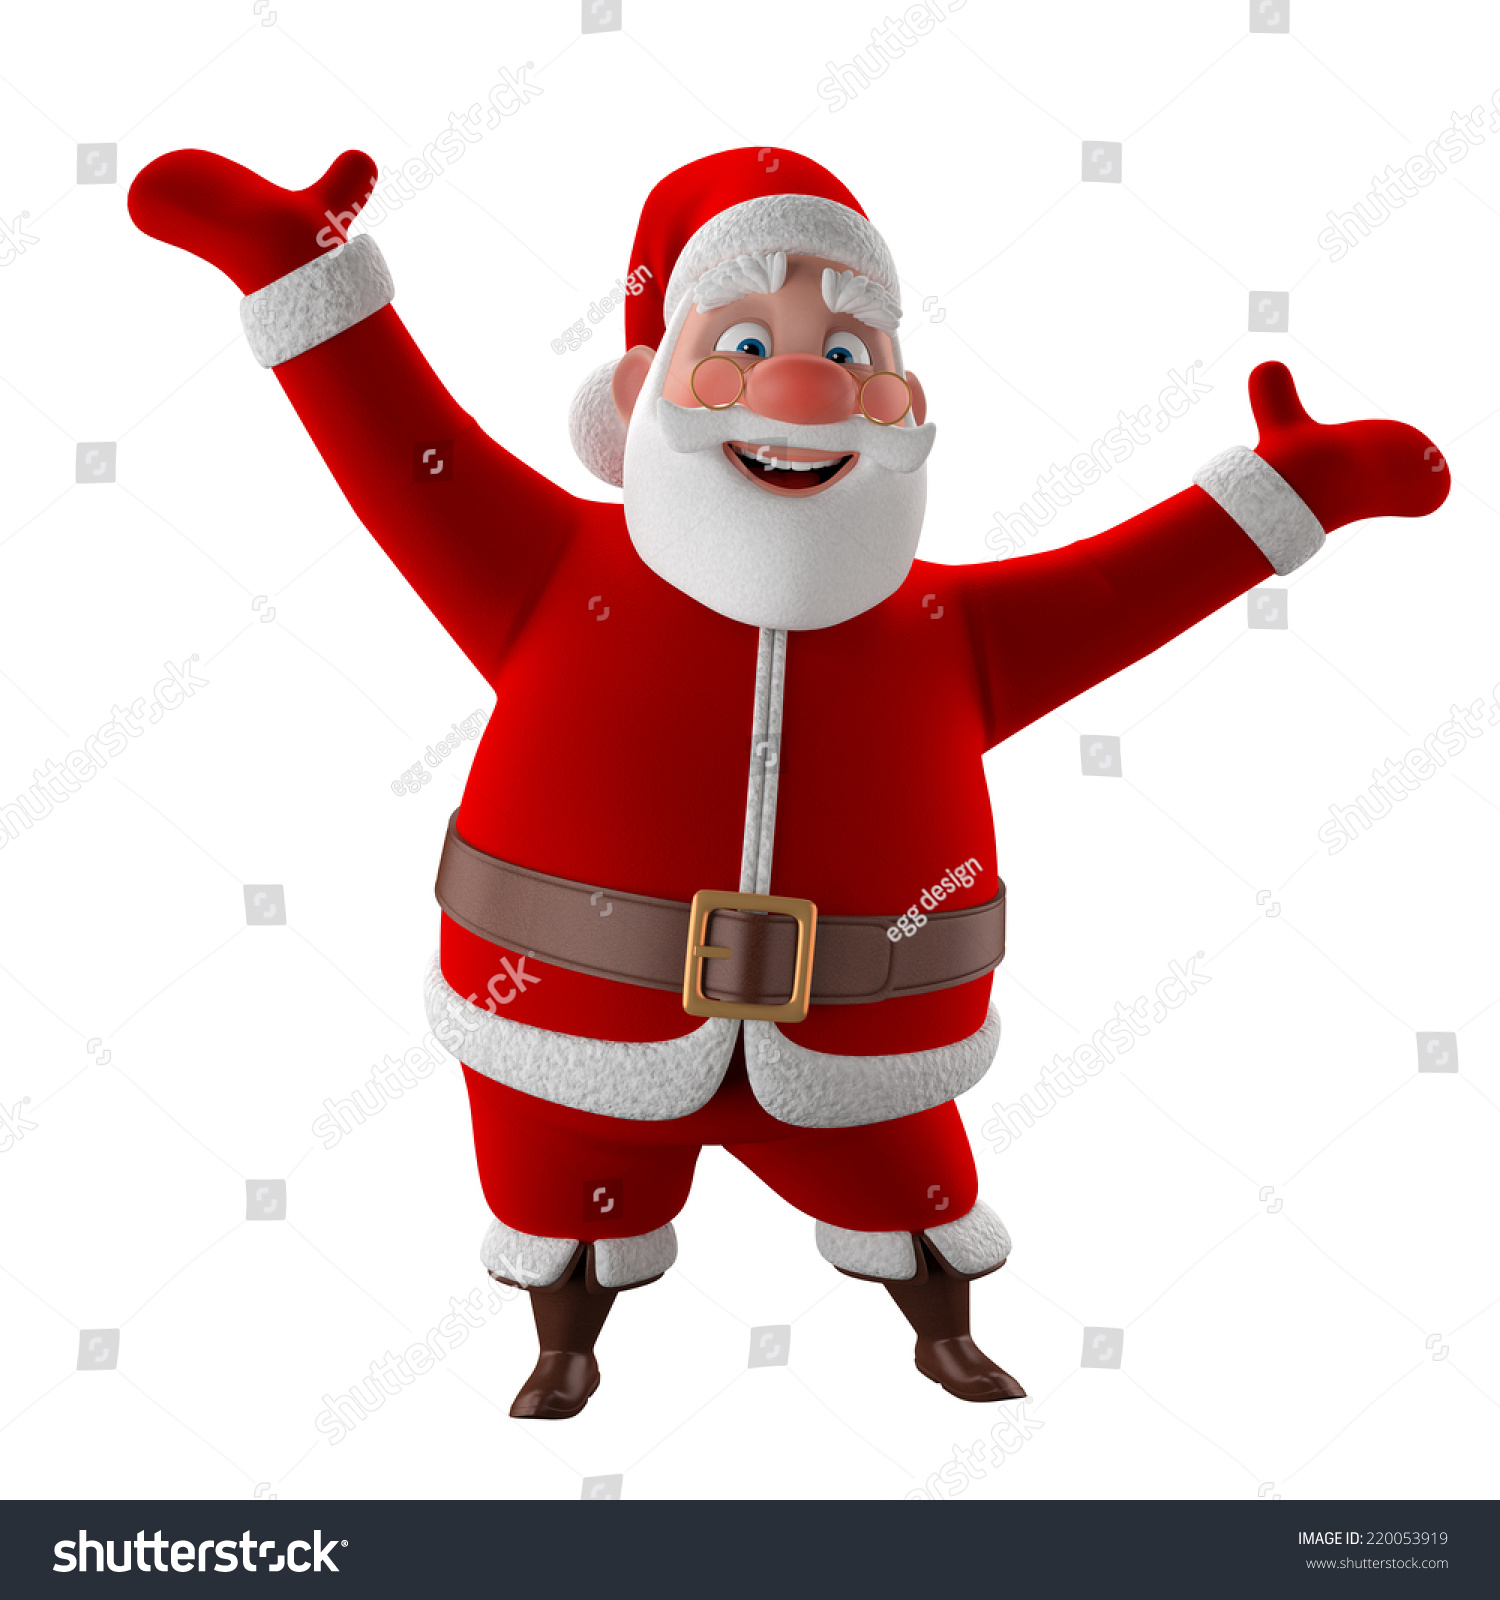 Cheerful 3d Model Santa Claus Happy Stock Illustration